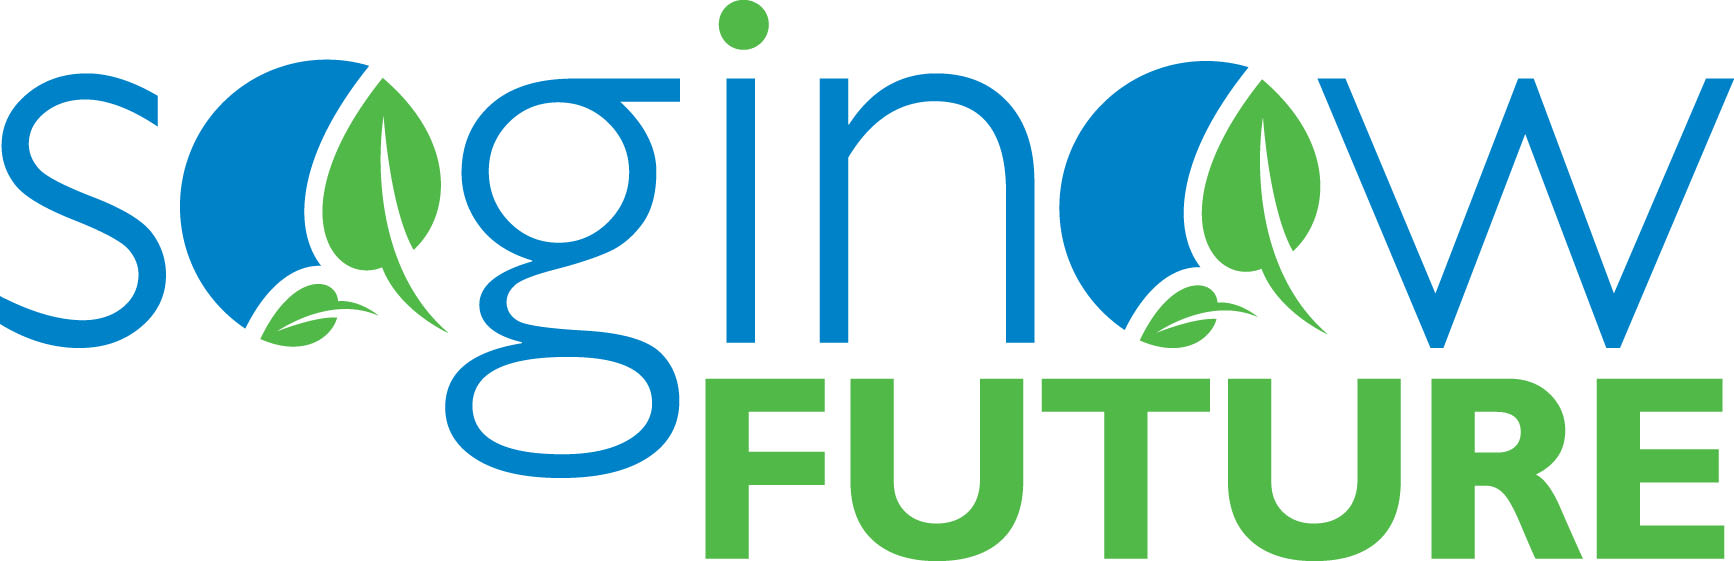 Thumbnail Image For Saginaw Future Logo - Click Here To See